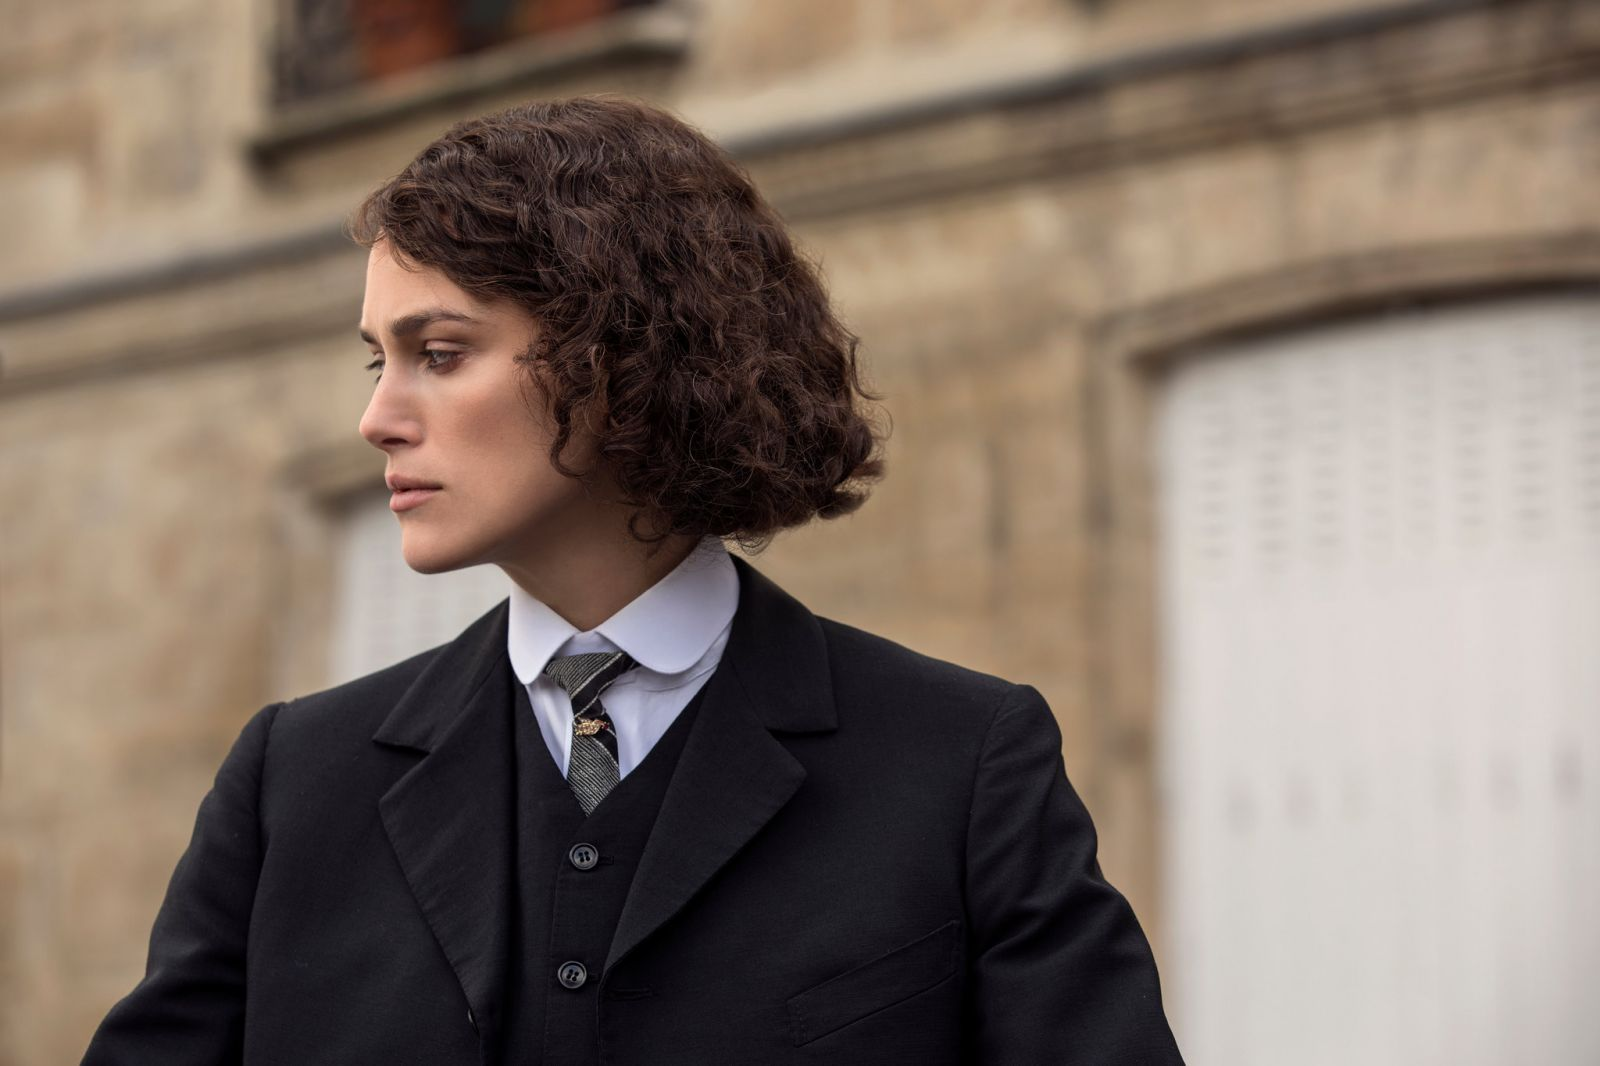 Keira Knightley plays the French writer Colette in this biographical movie directed by Wash Westmoreland